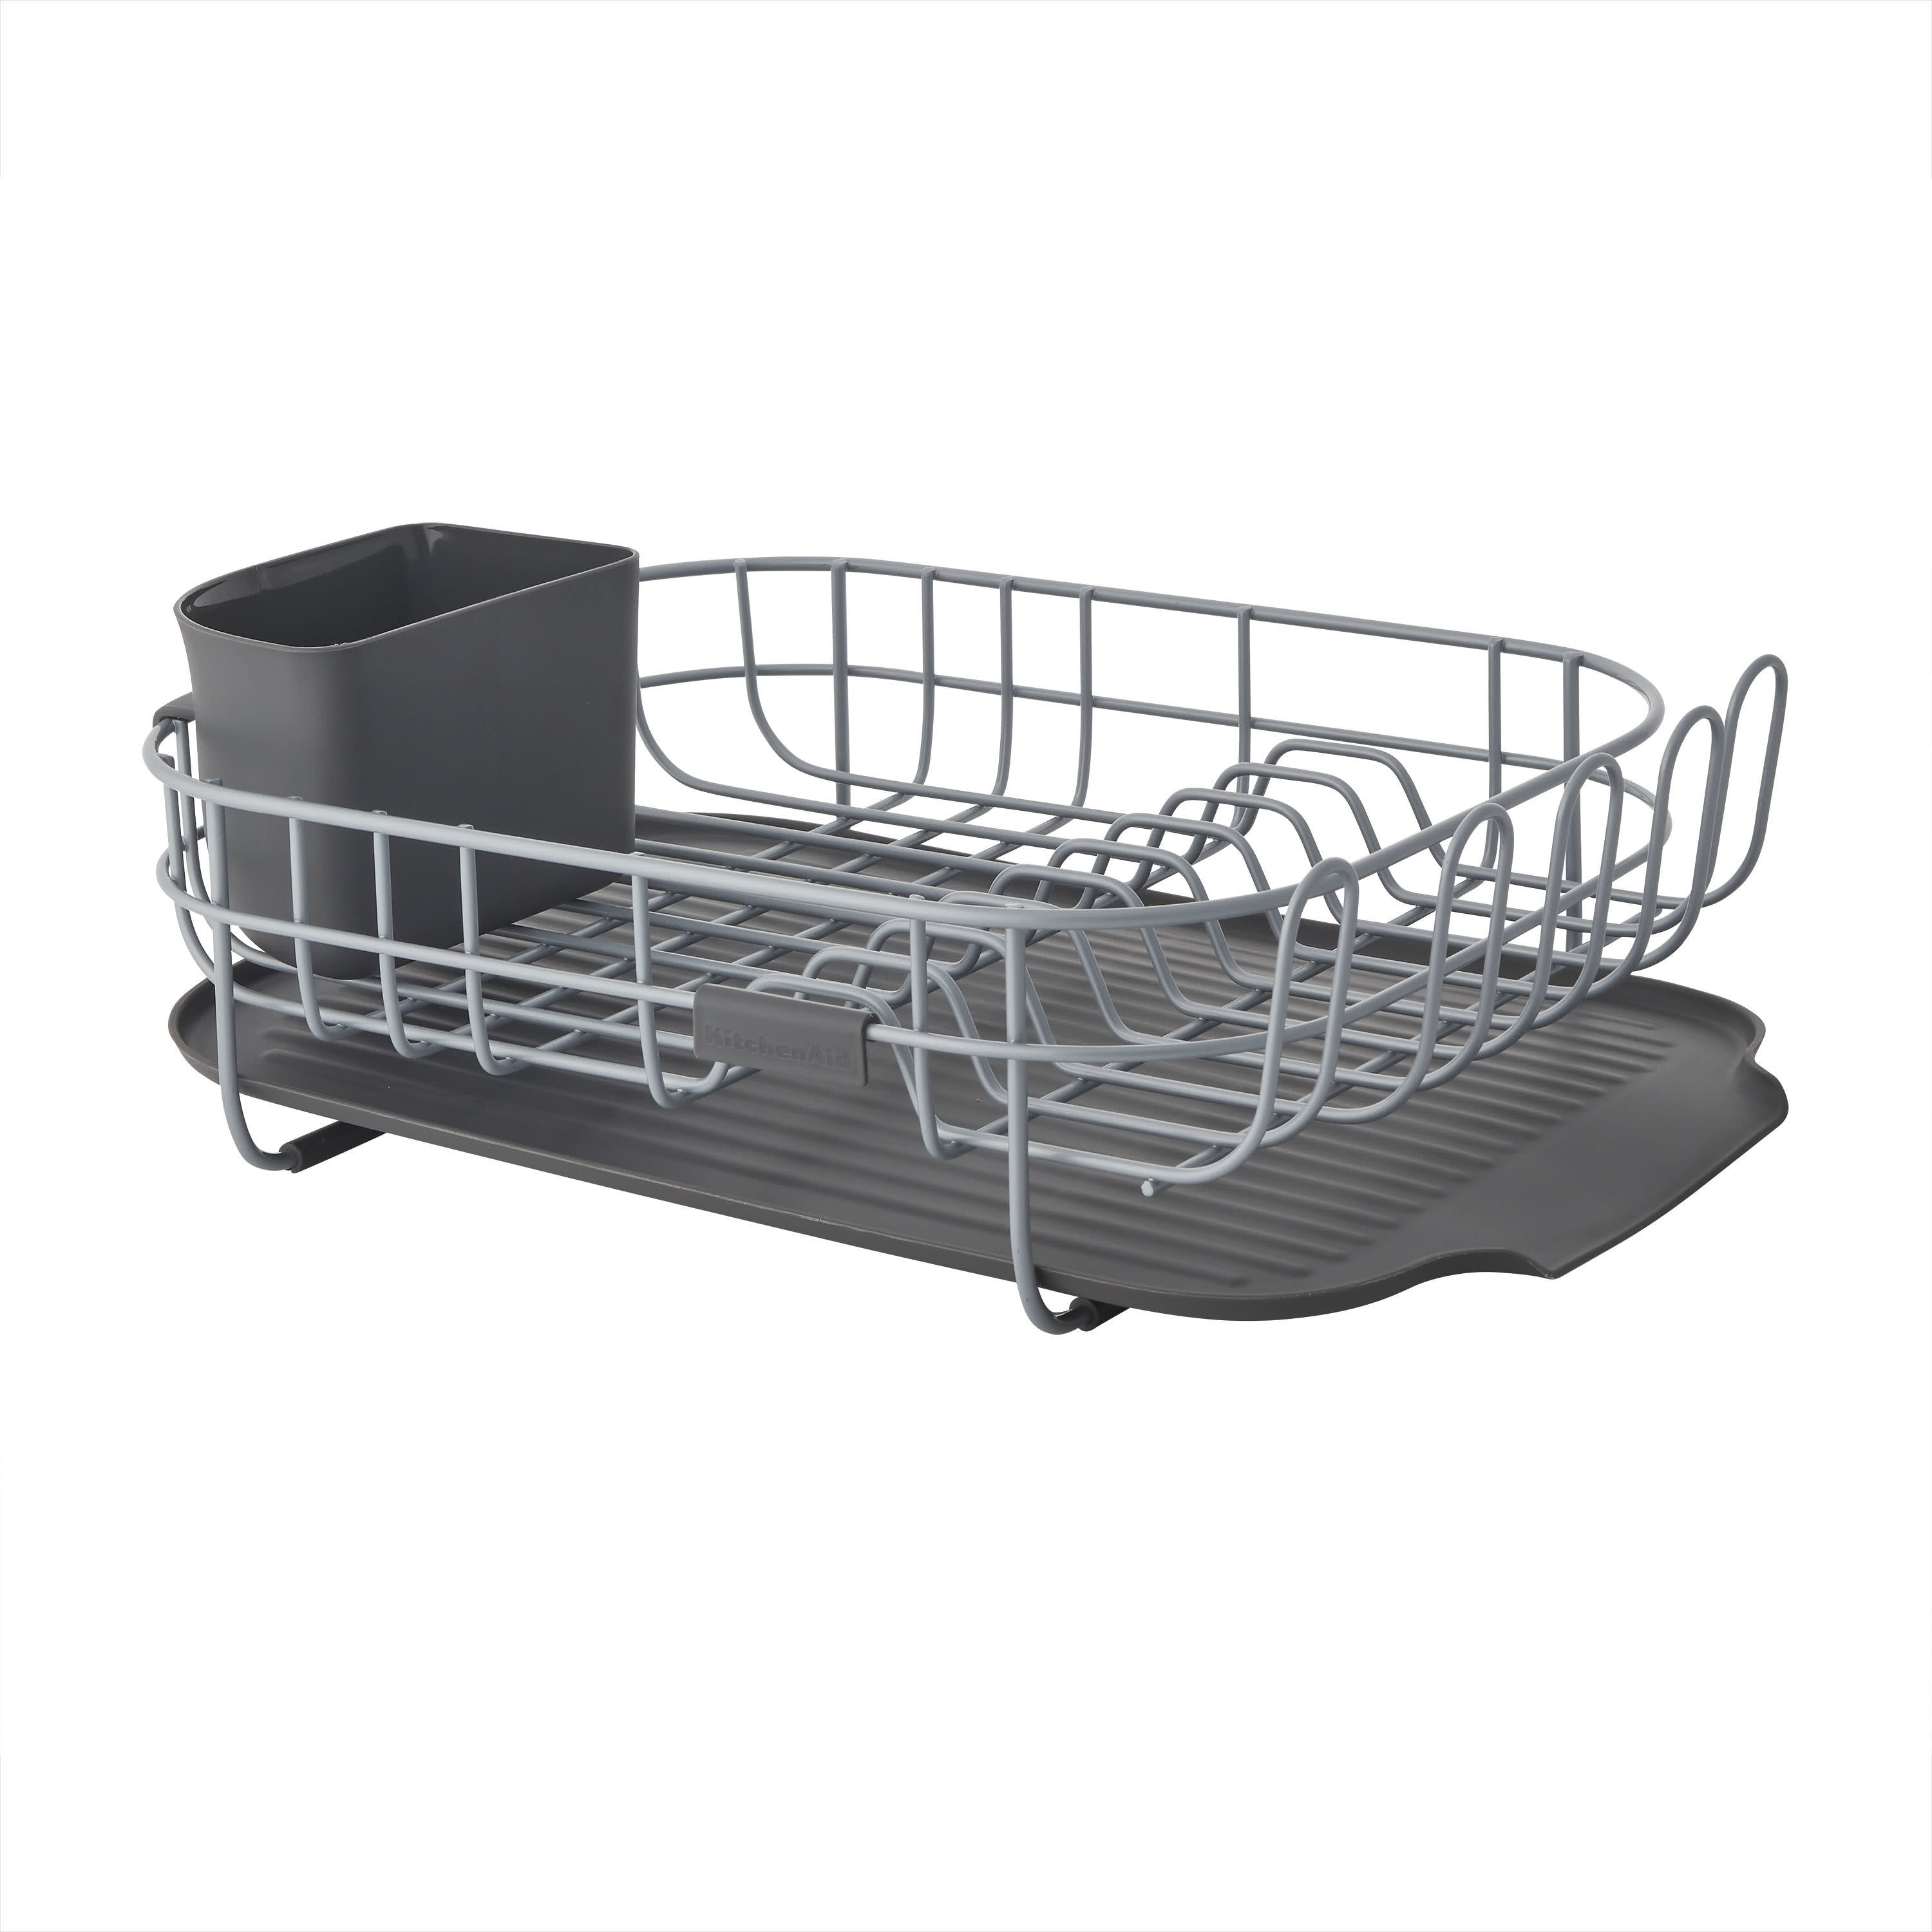 kitchenaid low profile powder coated dish drying rack in charcoal gray